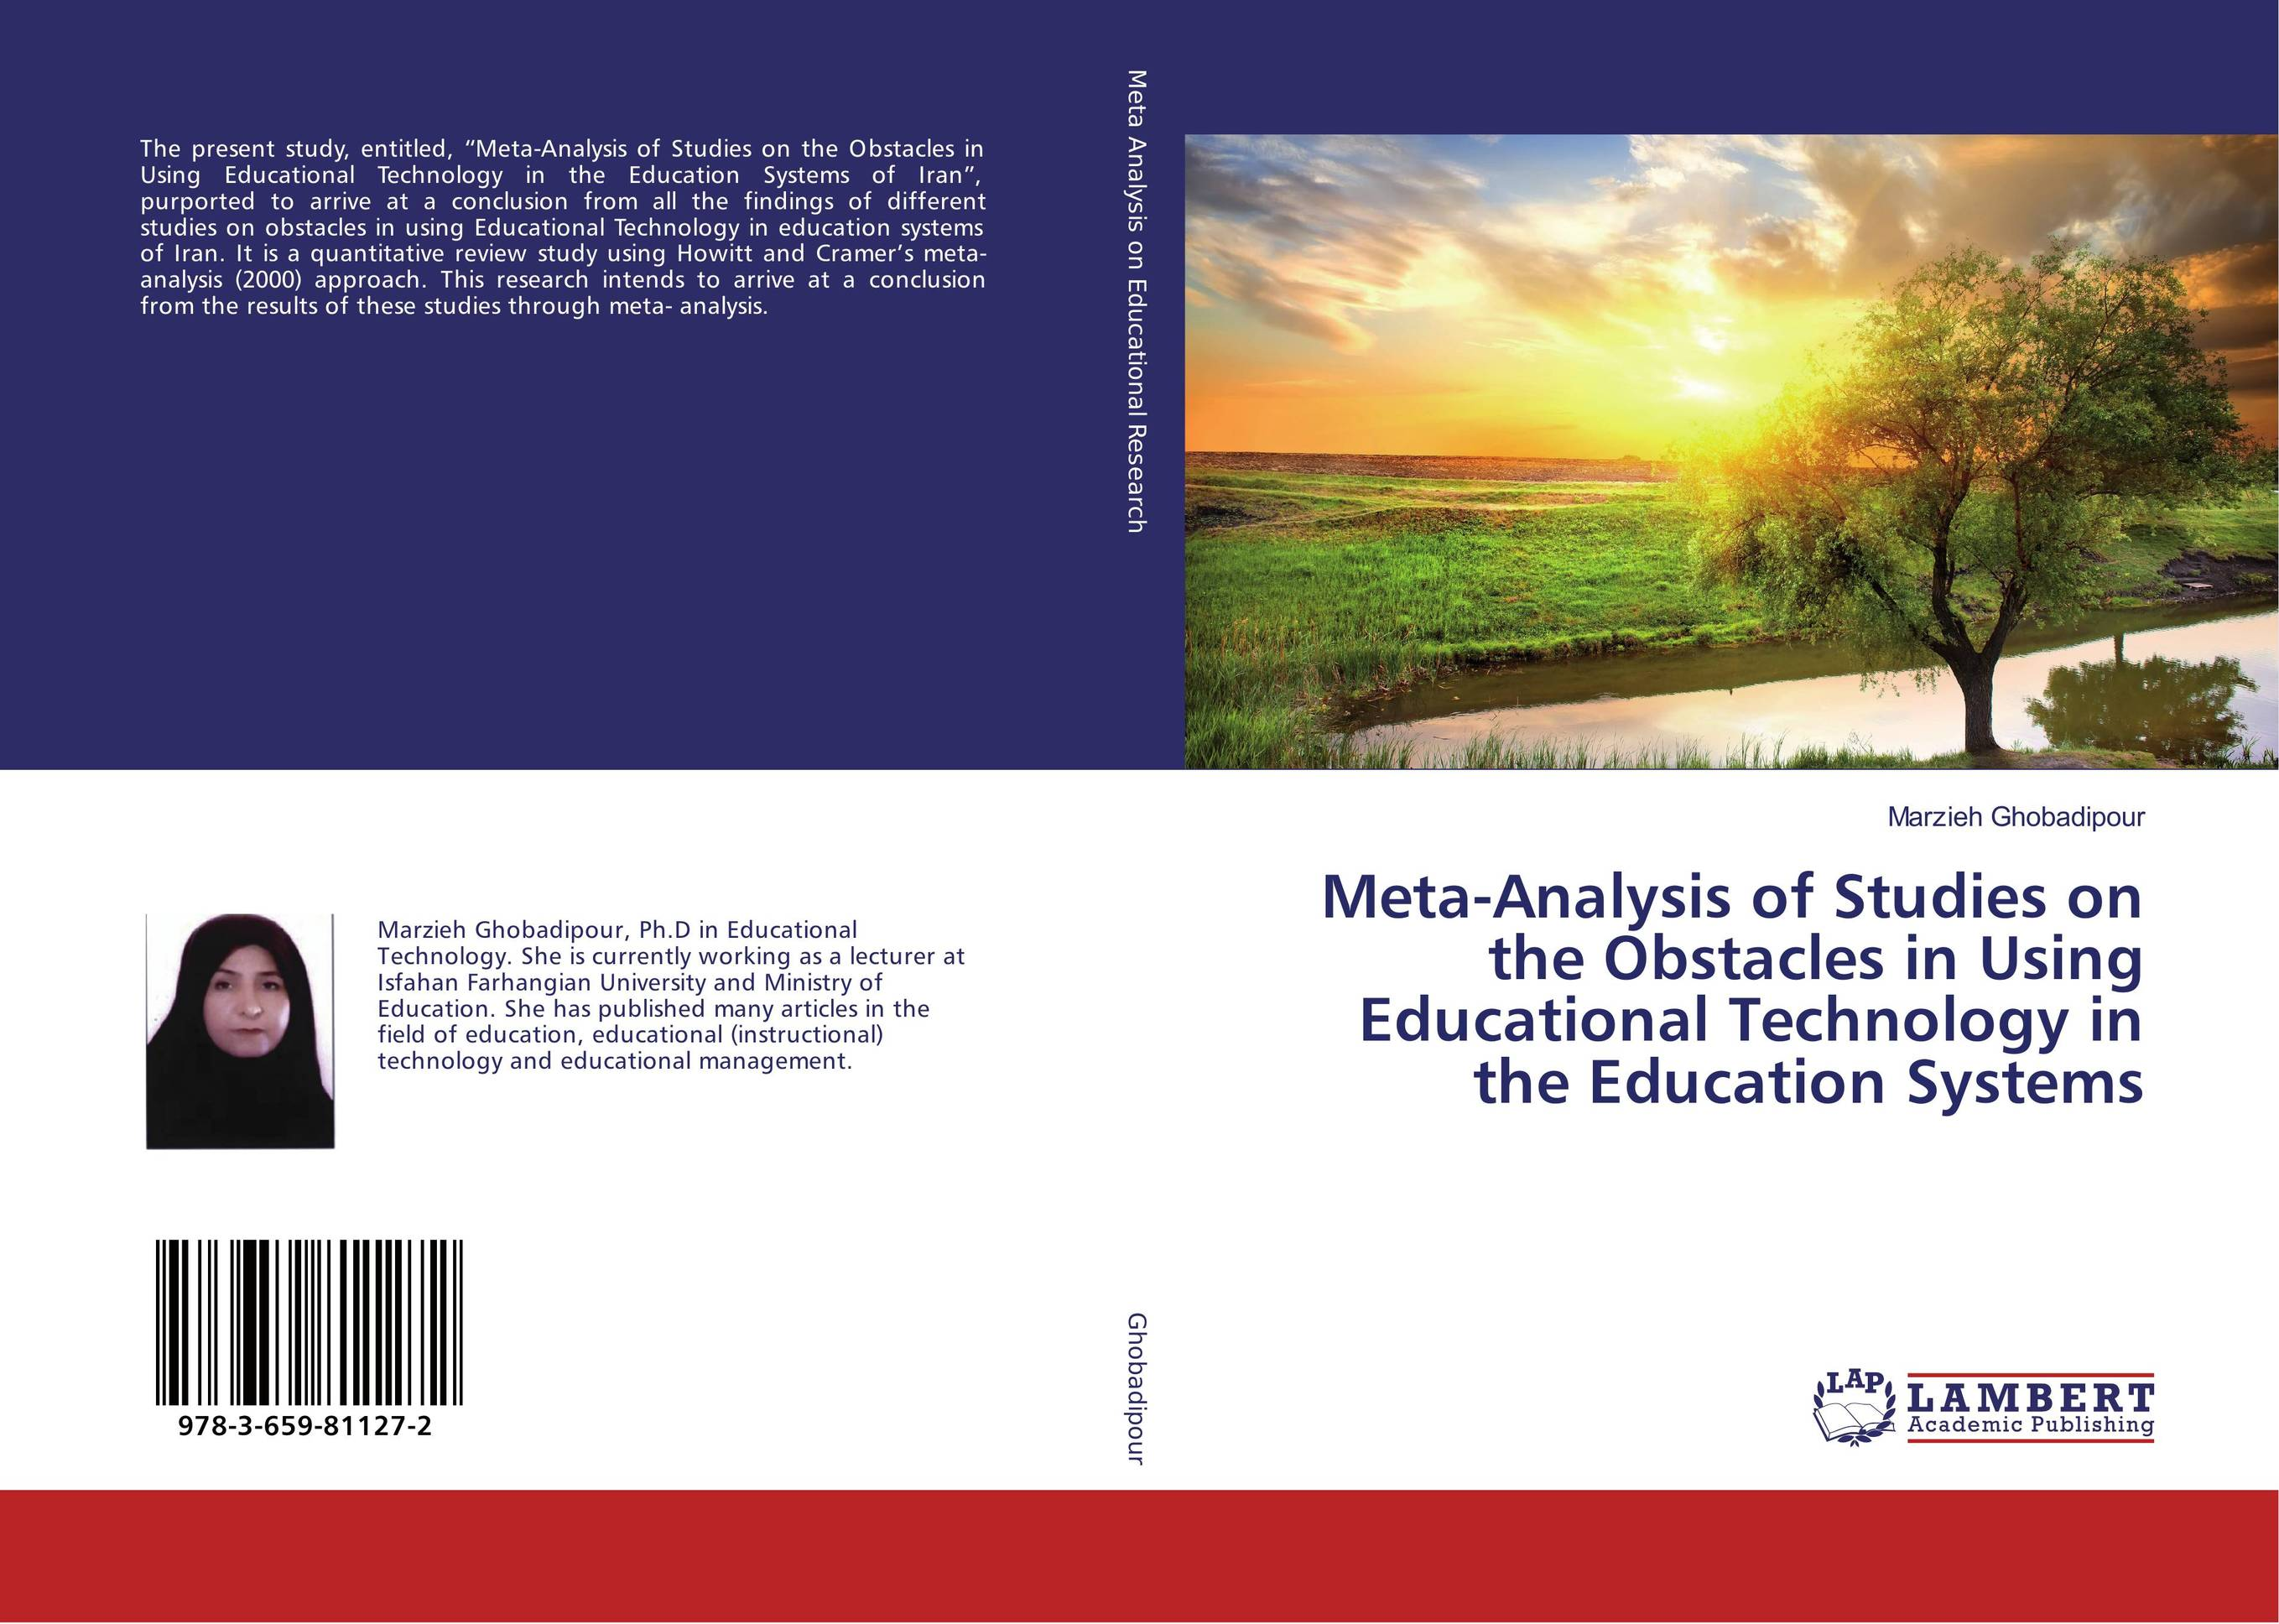 Meta-Analysis of Studies on the Obstacles in Using Educational Technology in the Education Systems dilip kumar dam break analysis using hec ras a case study